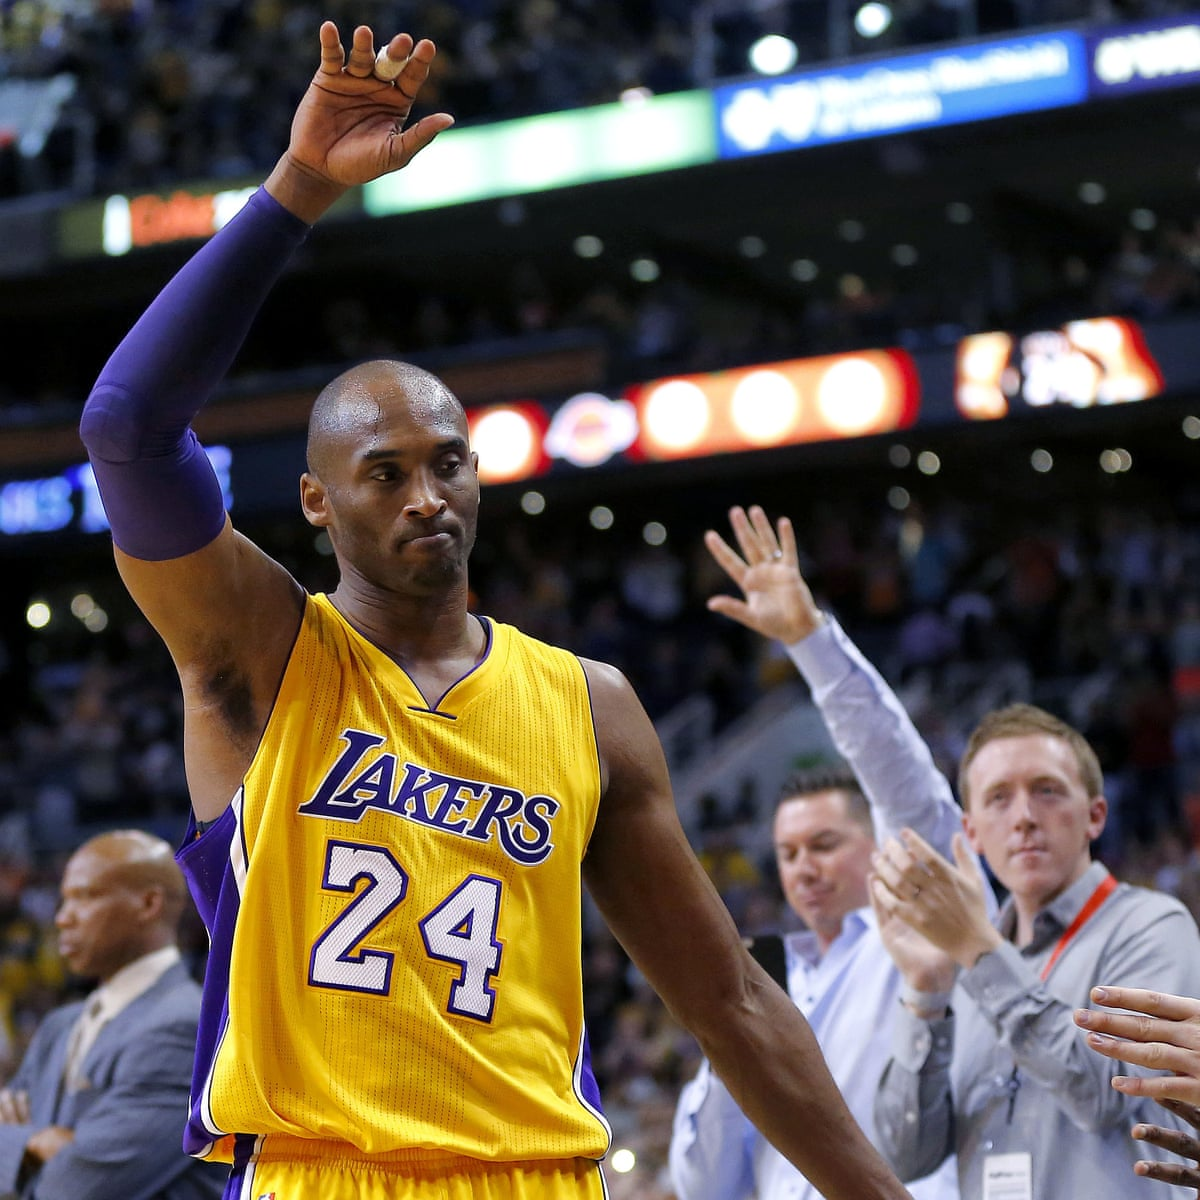 Kobe Bryant Turned Down Chance To Play Basketball For Barcelona Report Nba The Guardian